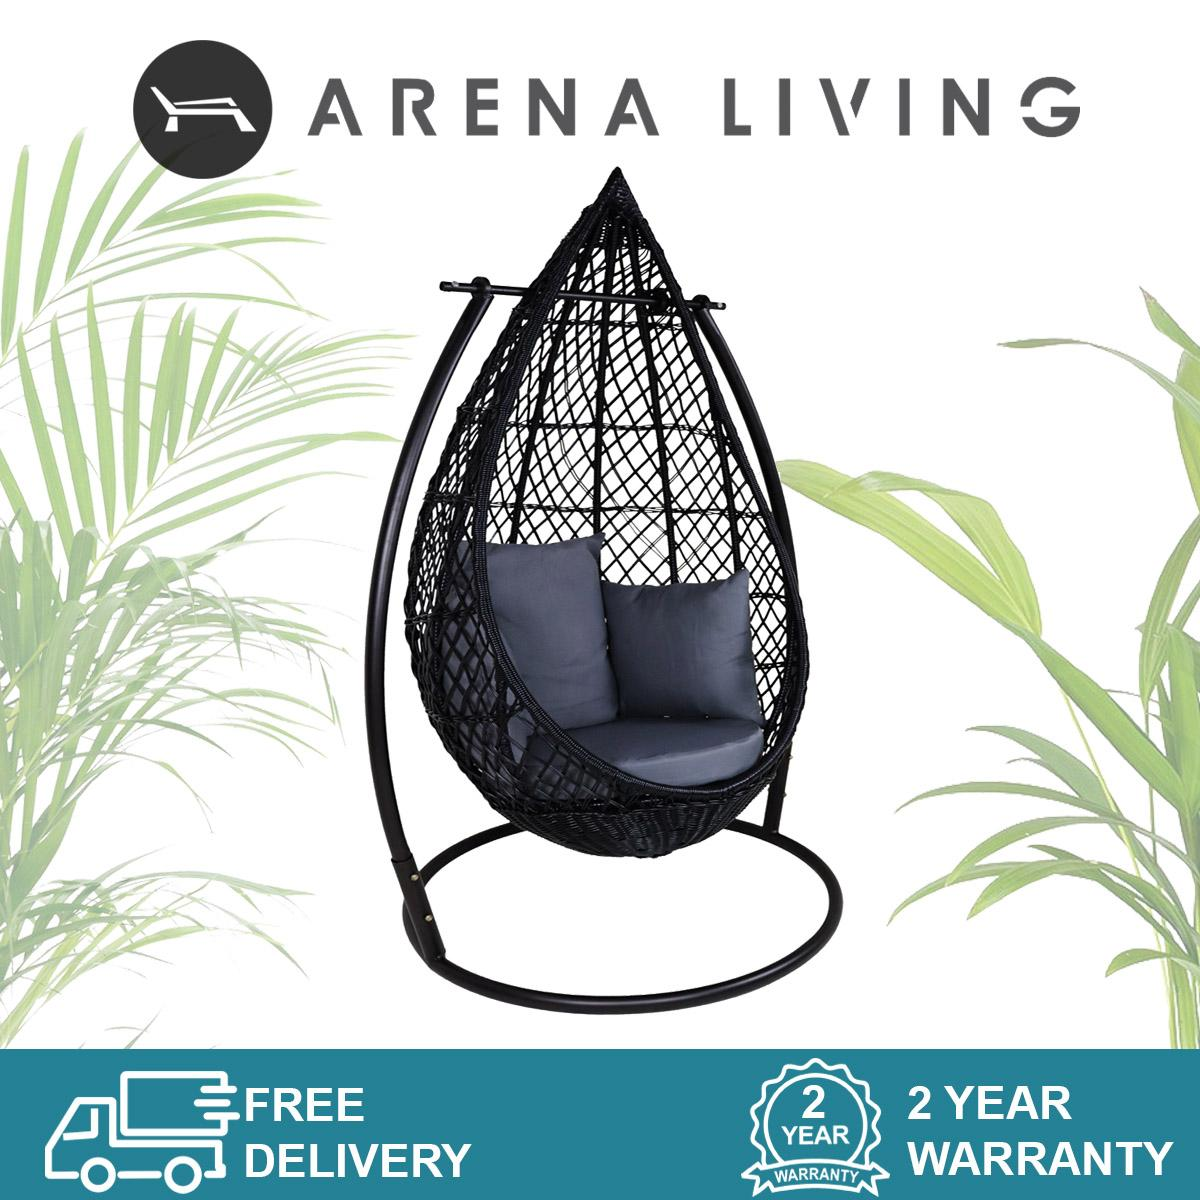 Mulia Cocoon Swing Chair, Grey Cushion